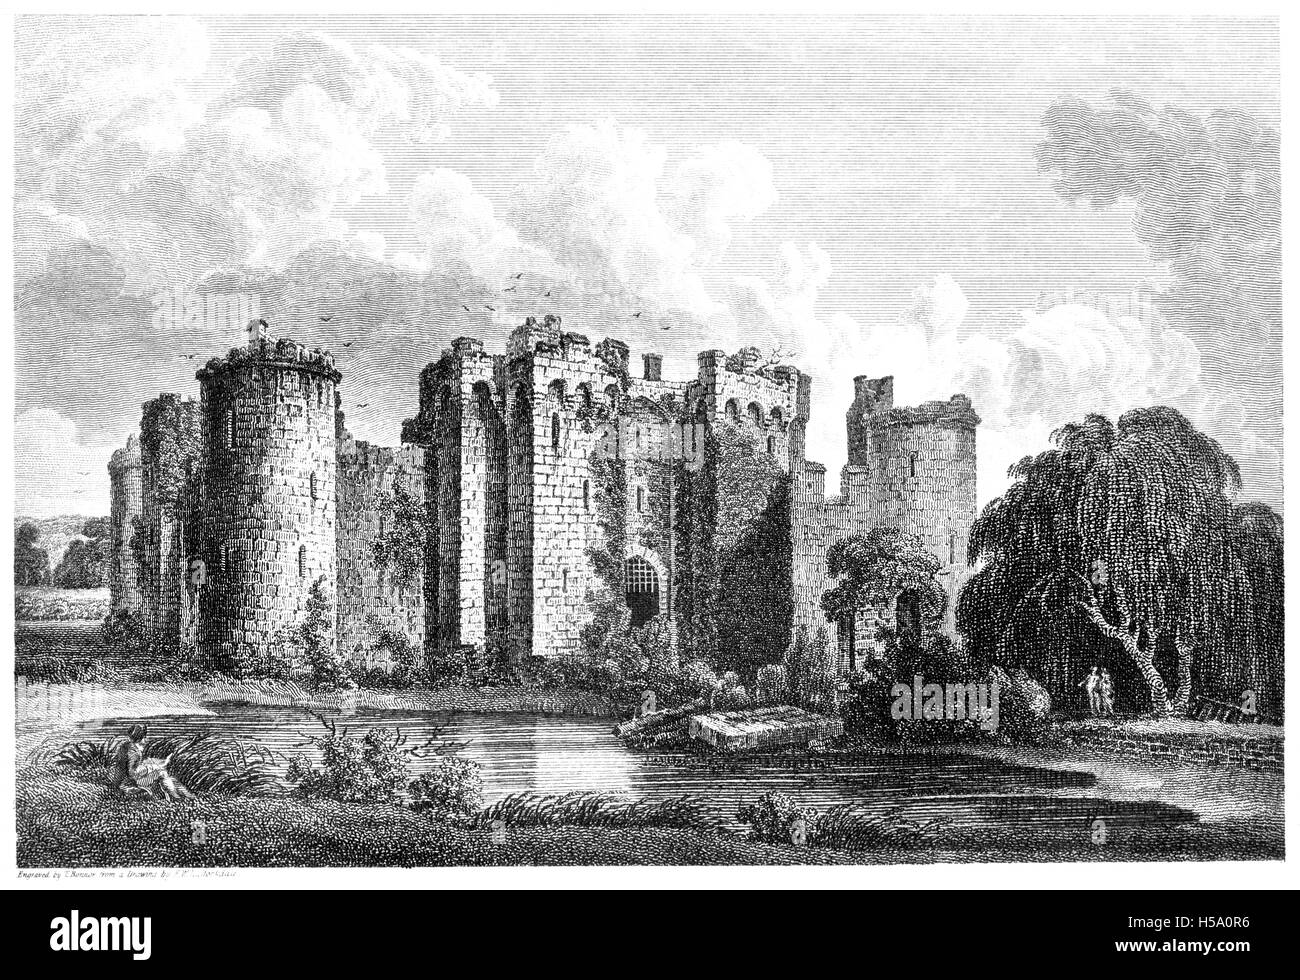 An engraving of Bodiham (Bodiam) Castle, Sussex scanned at high resolution from a book printed in 1812. Believed - Stock Image